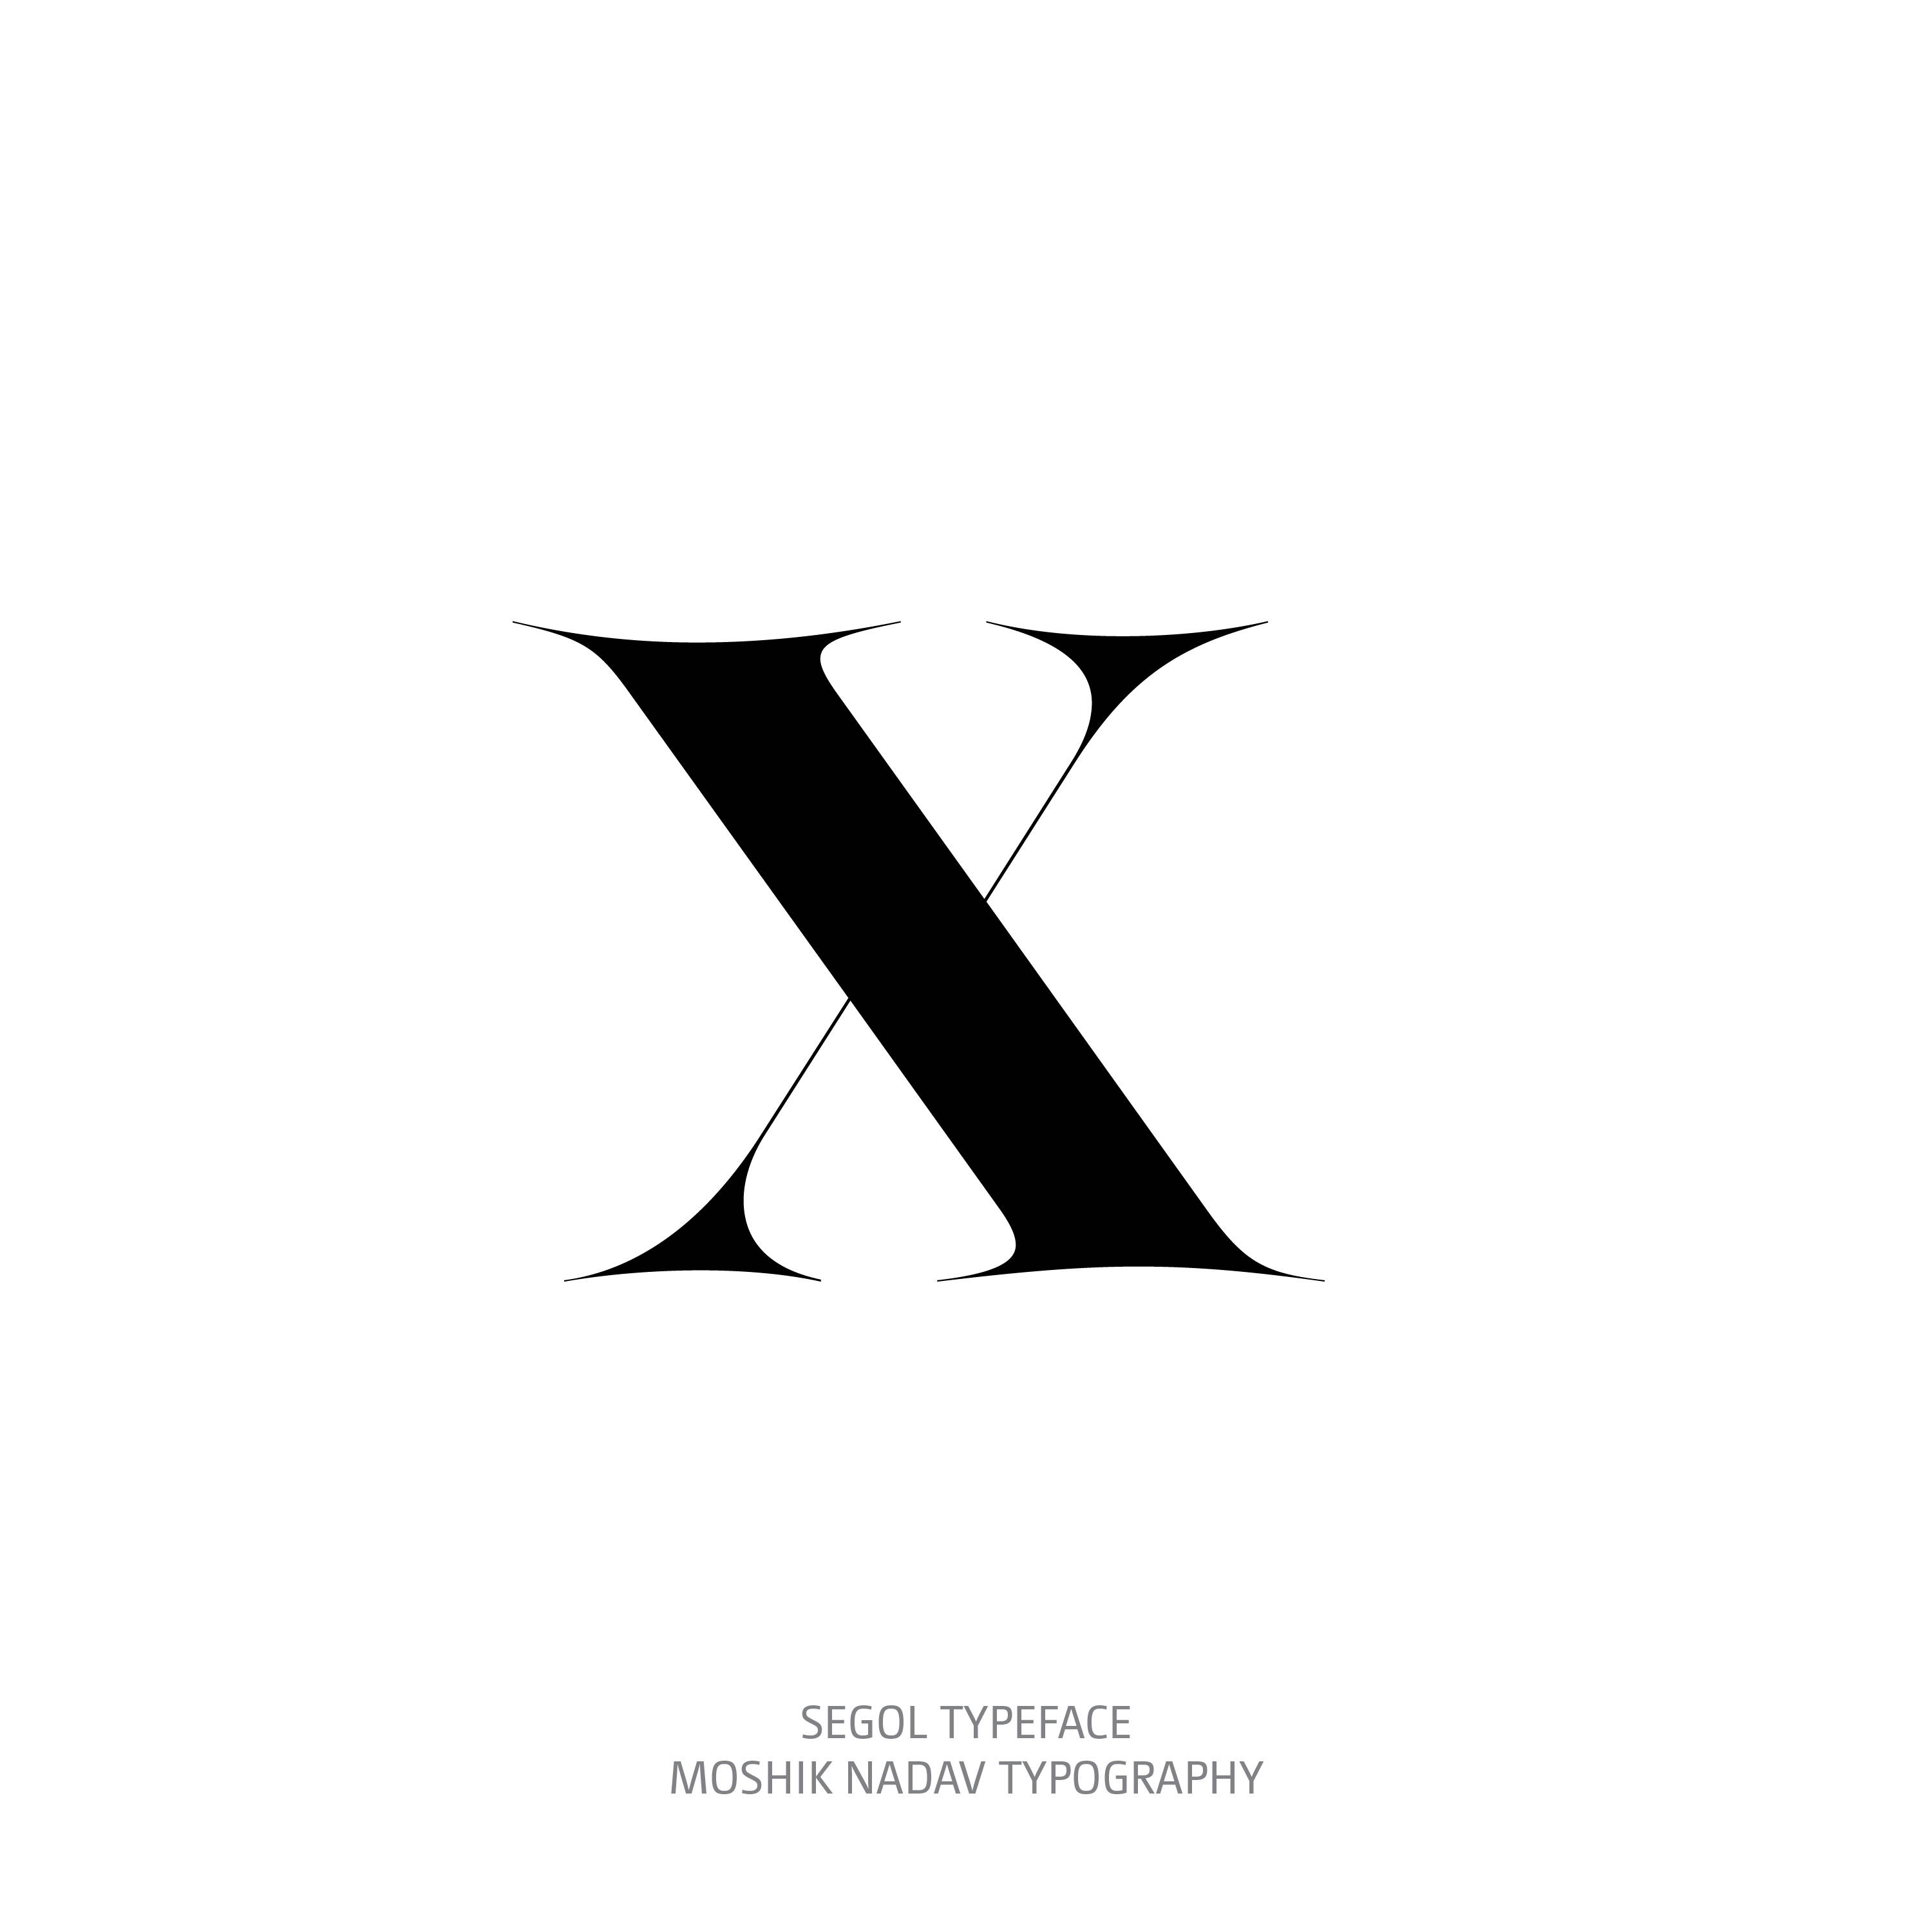 Segol Typeface x The Ultimate Font For Fashion Typography and sexy logos